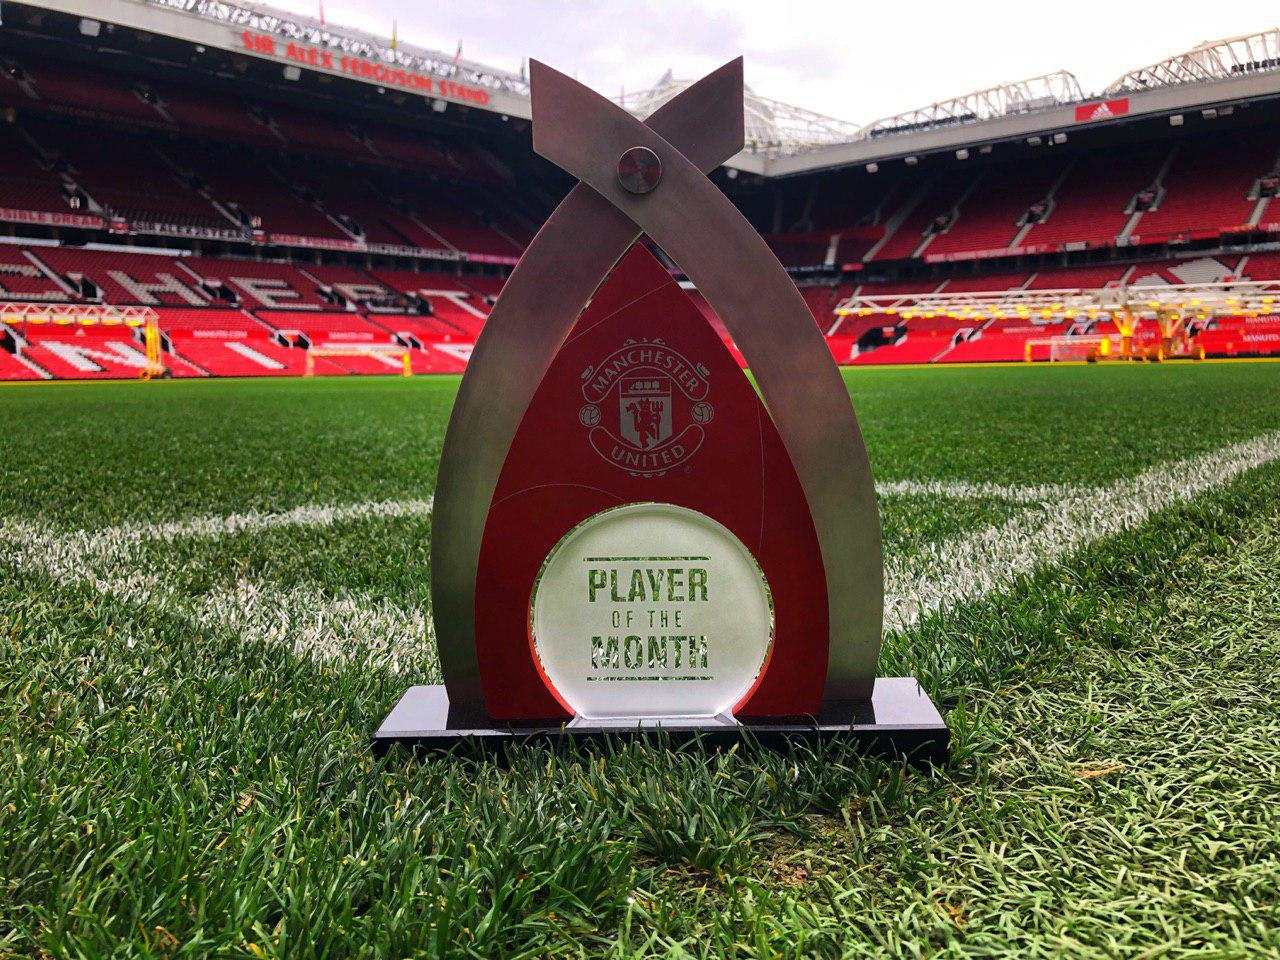 Man Utd's Player of the Month trophy